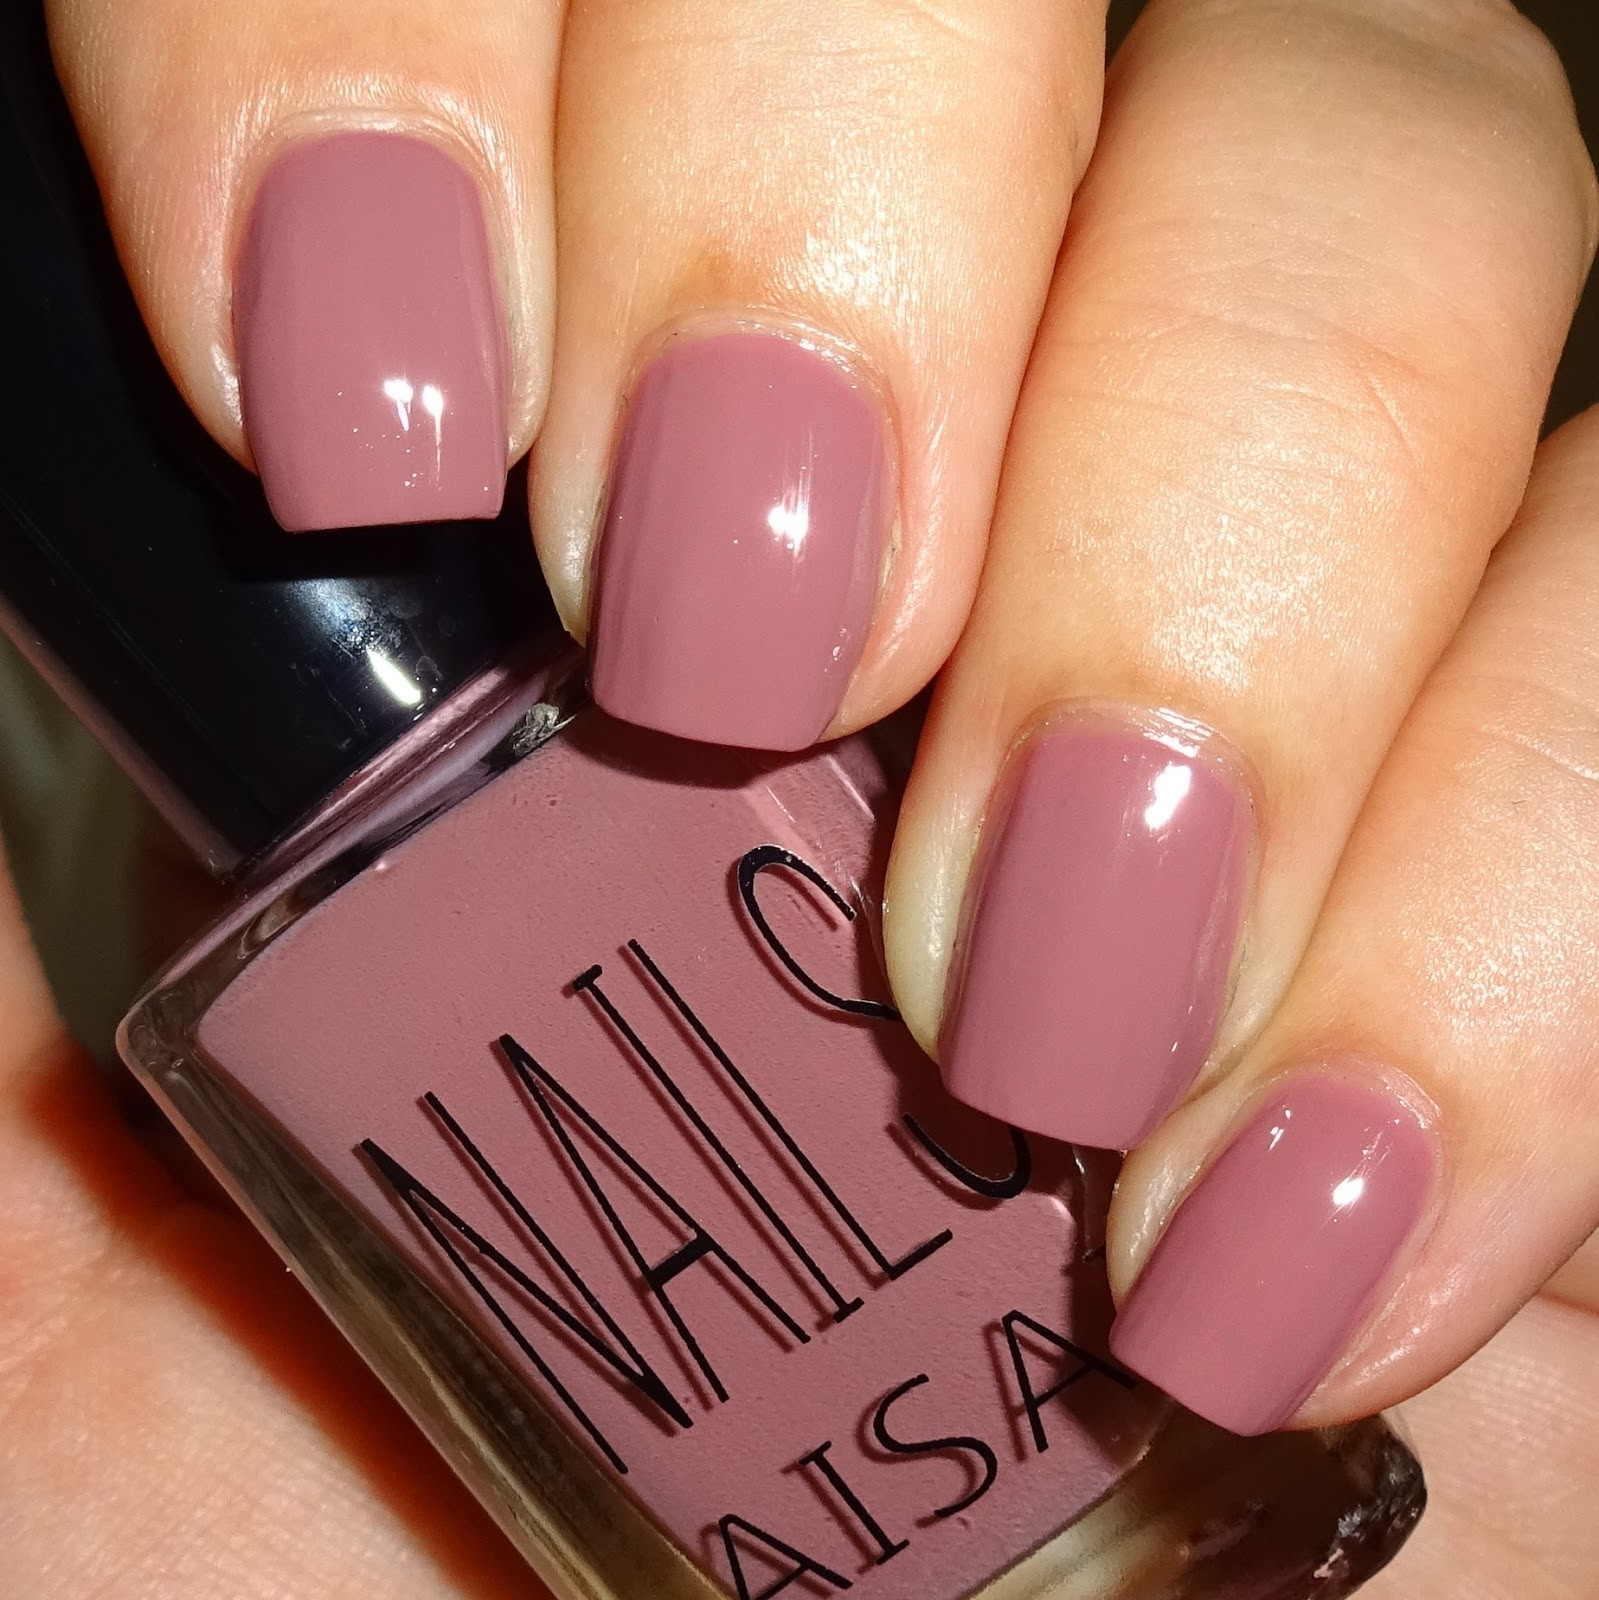 Pink Nail Colors  Wendy s Delights Born Pretty Store Antique Rose Pink Nail